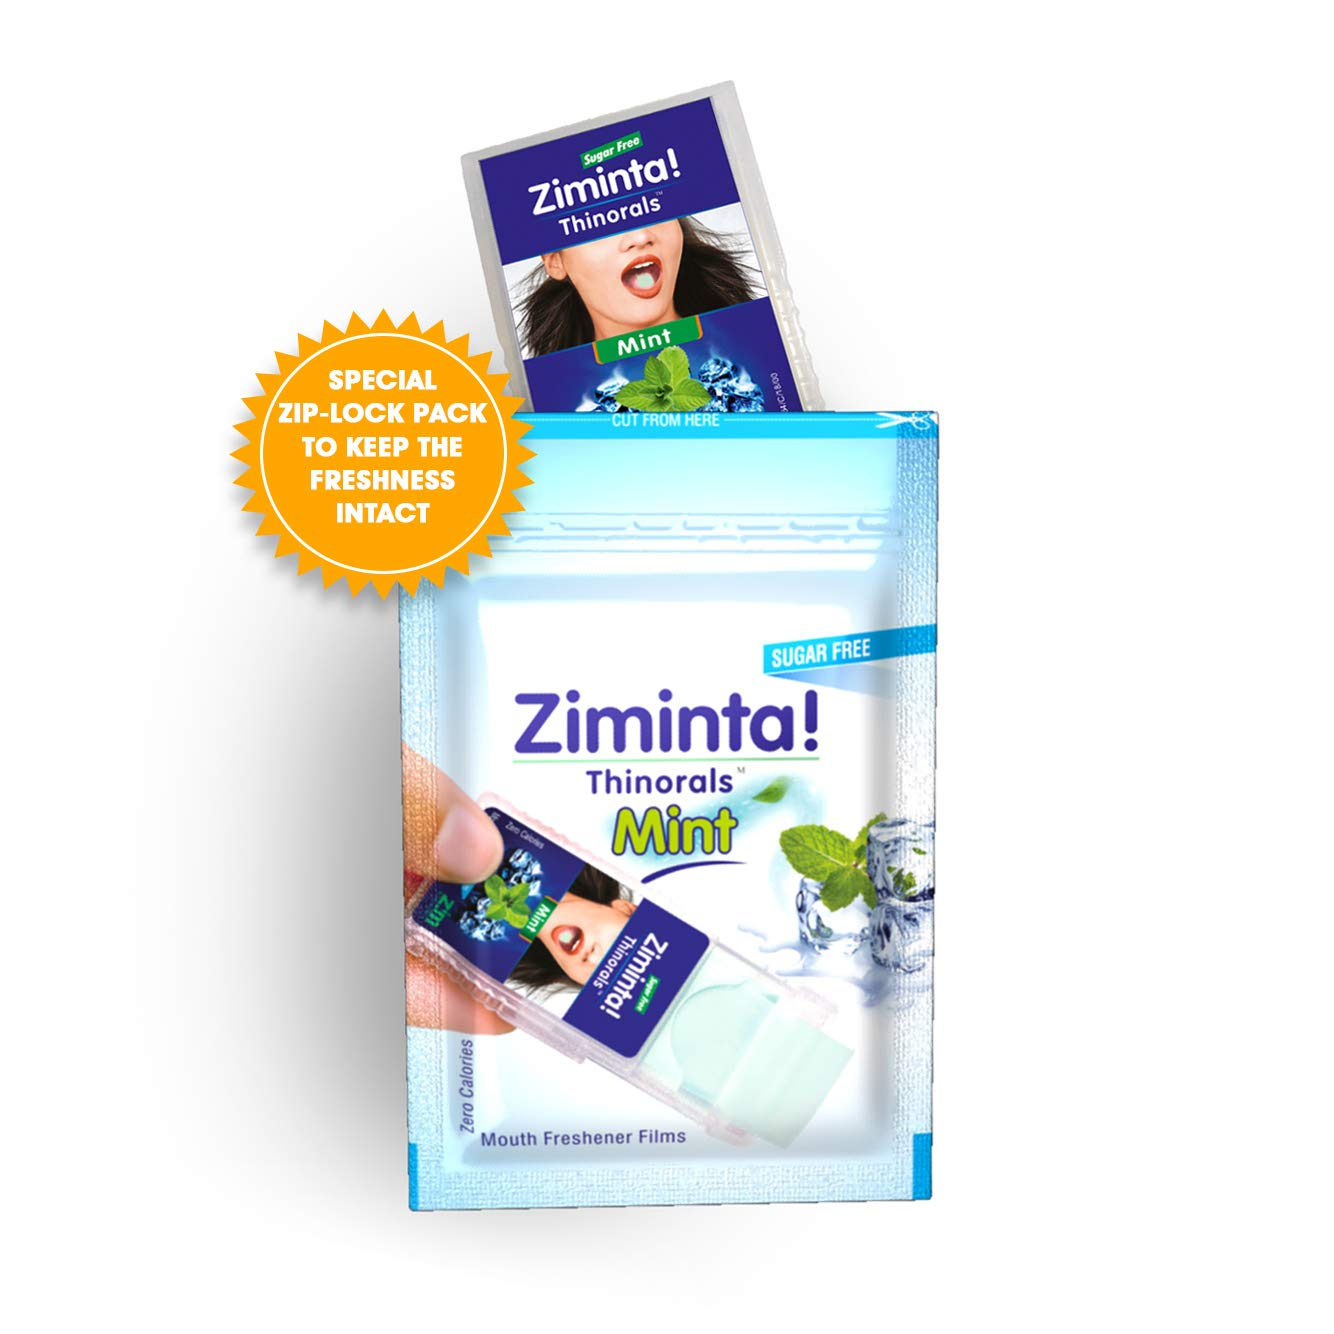 Ziminta Sugar Free Mint Mouth Freshener Easily Soluble Digestive  Dispensable Strip (30 Strips, Mint Flavour) - Pack of 1